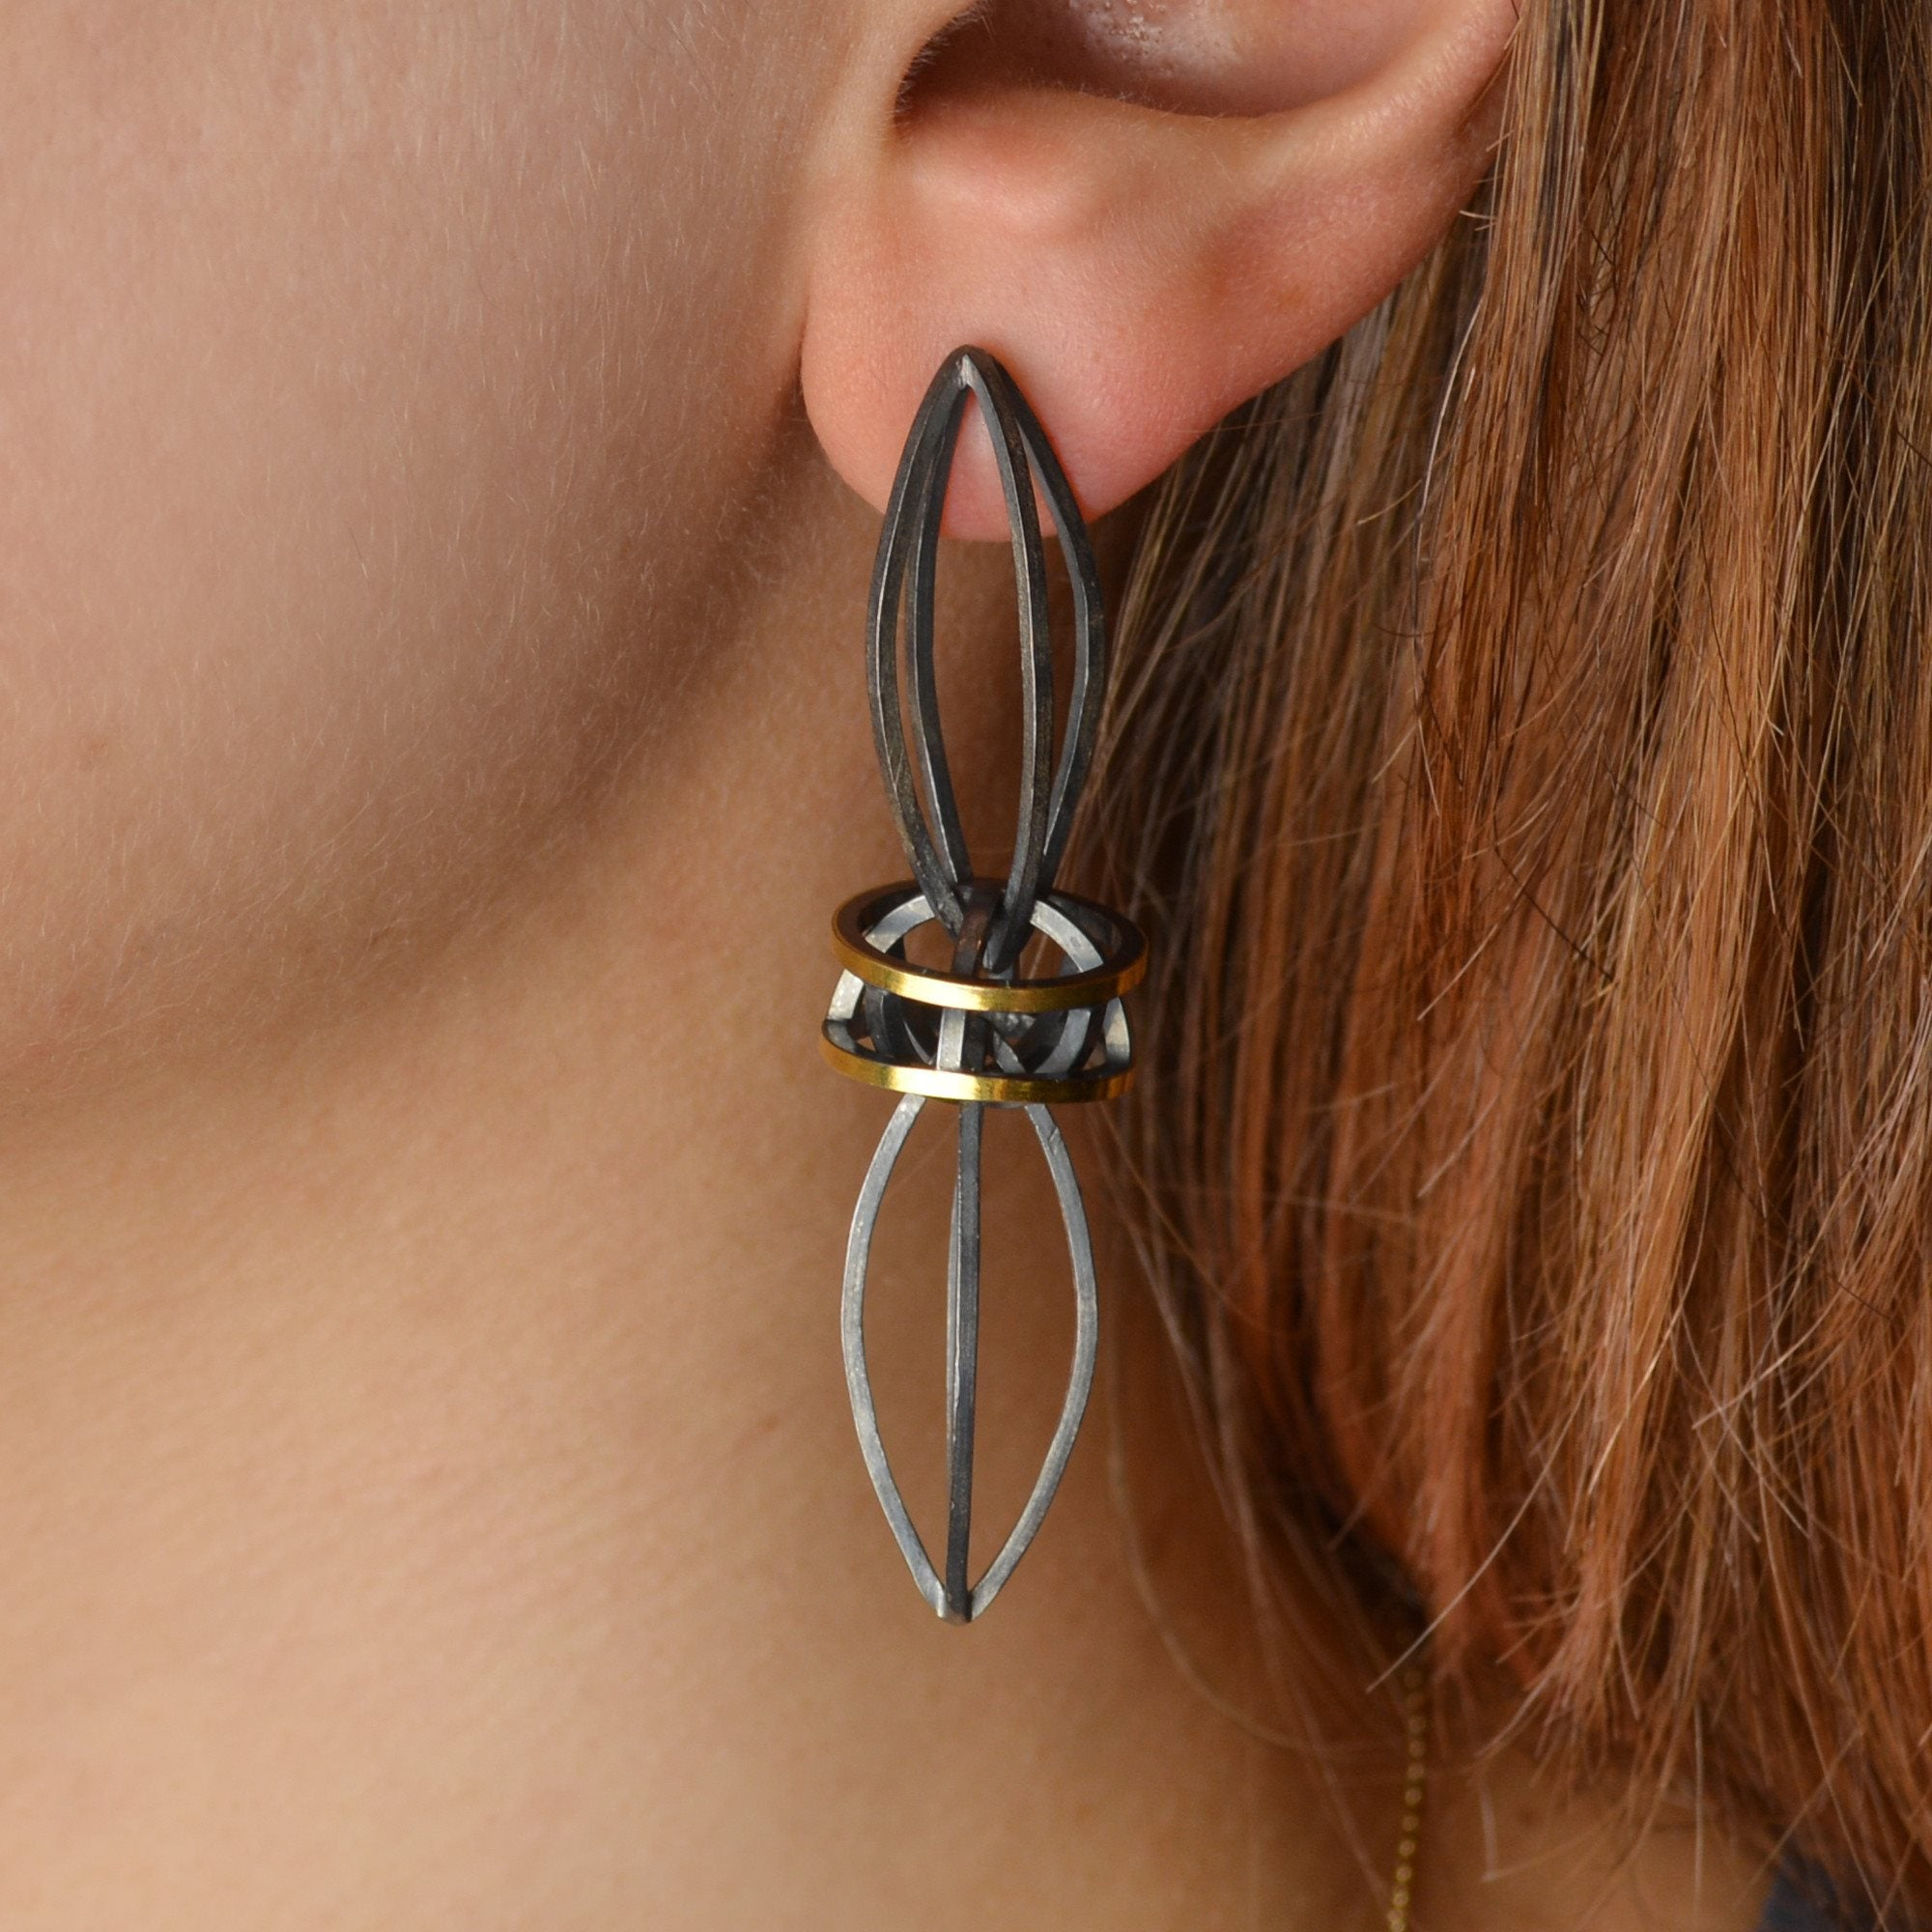 Double Lattis Earrings in 22k Gold, Black Patina finish